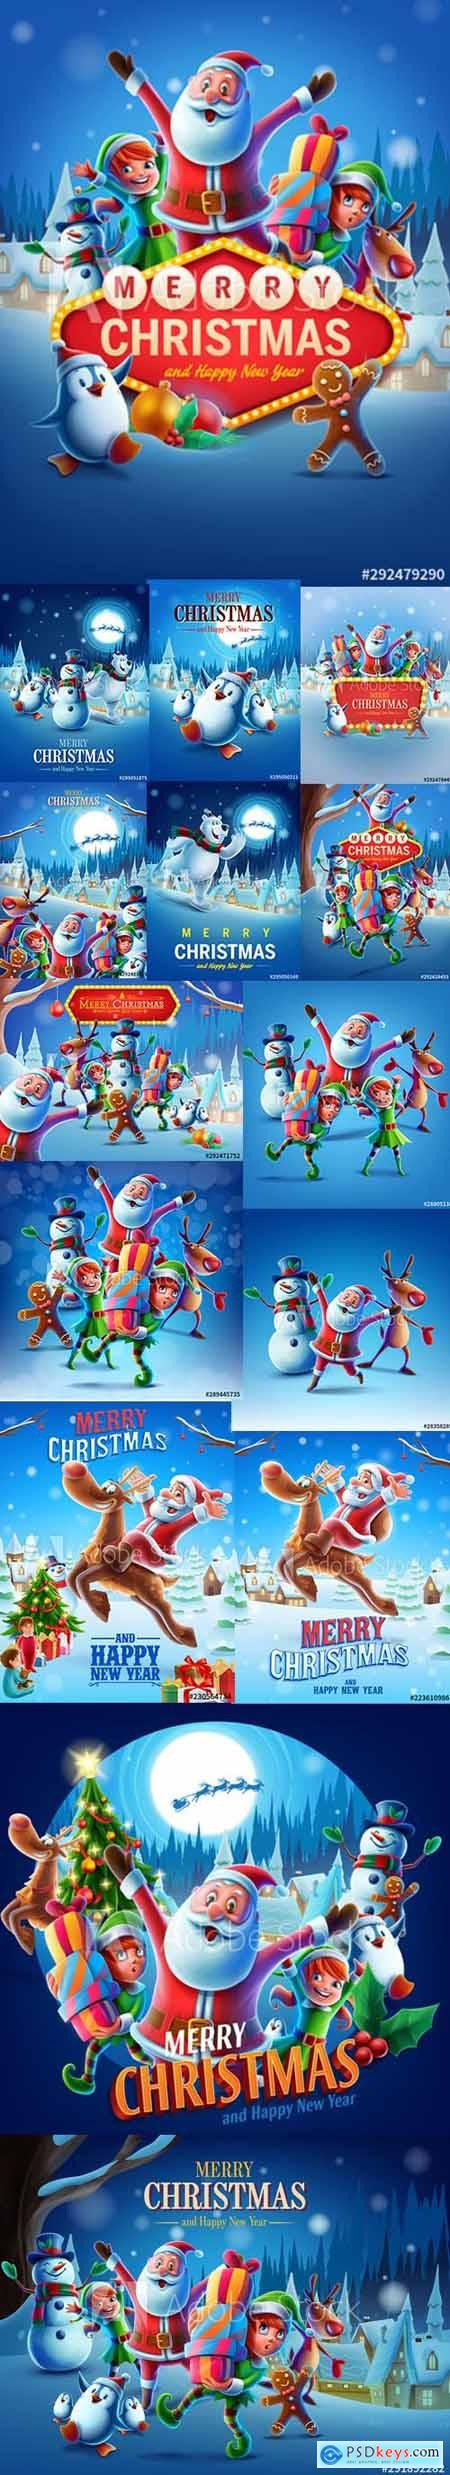 Vector Set - Christmas Illustrations with Santa Claus and Reindeer